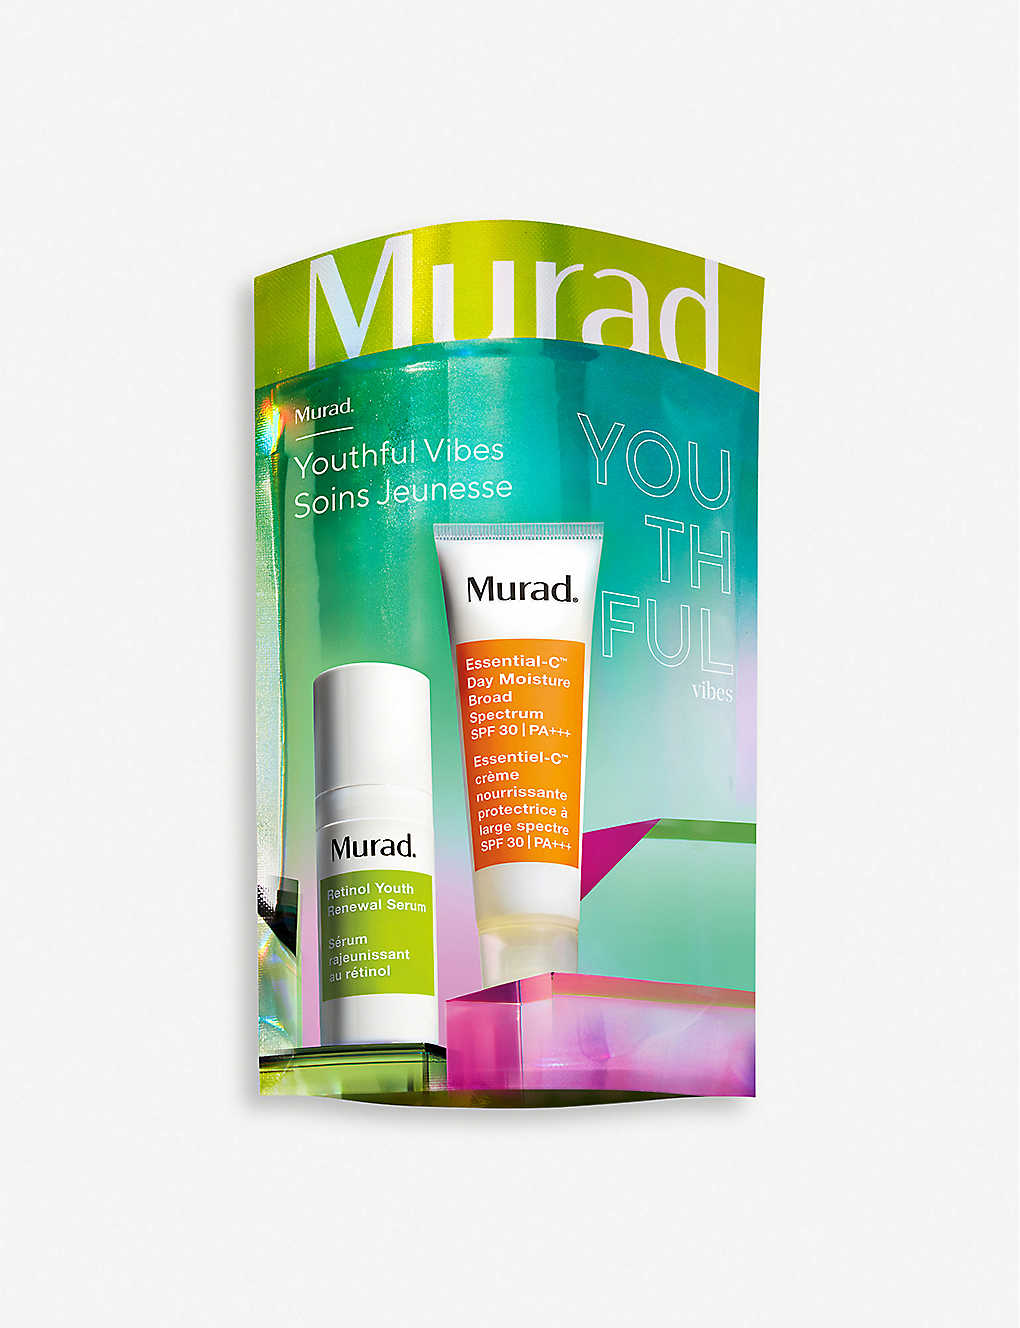 MURAD: Youth Vibes gift set